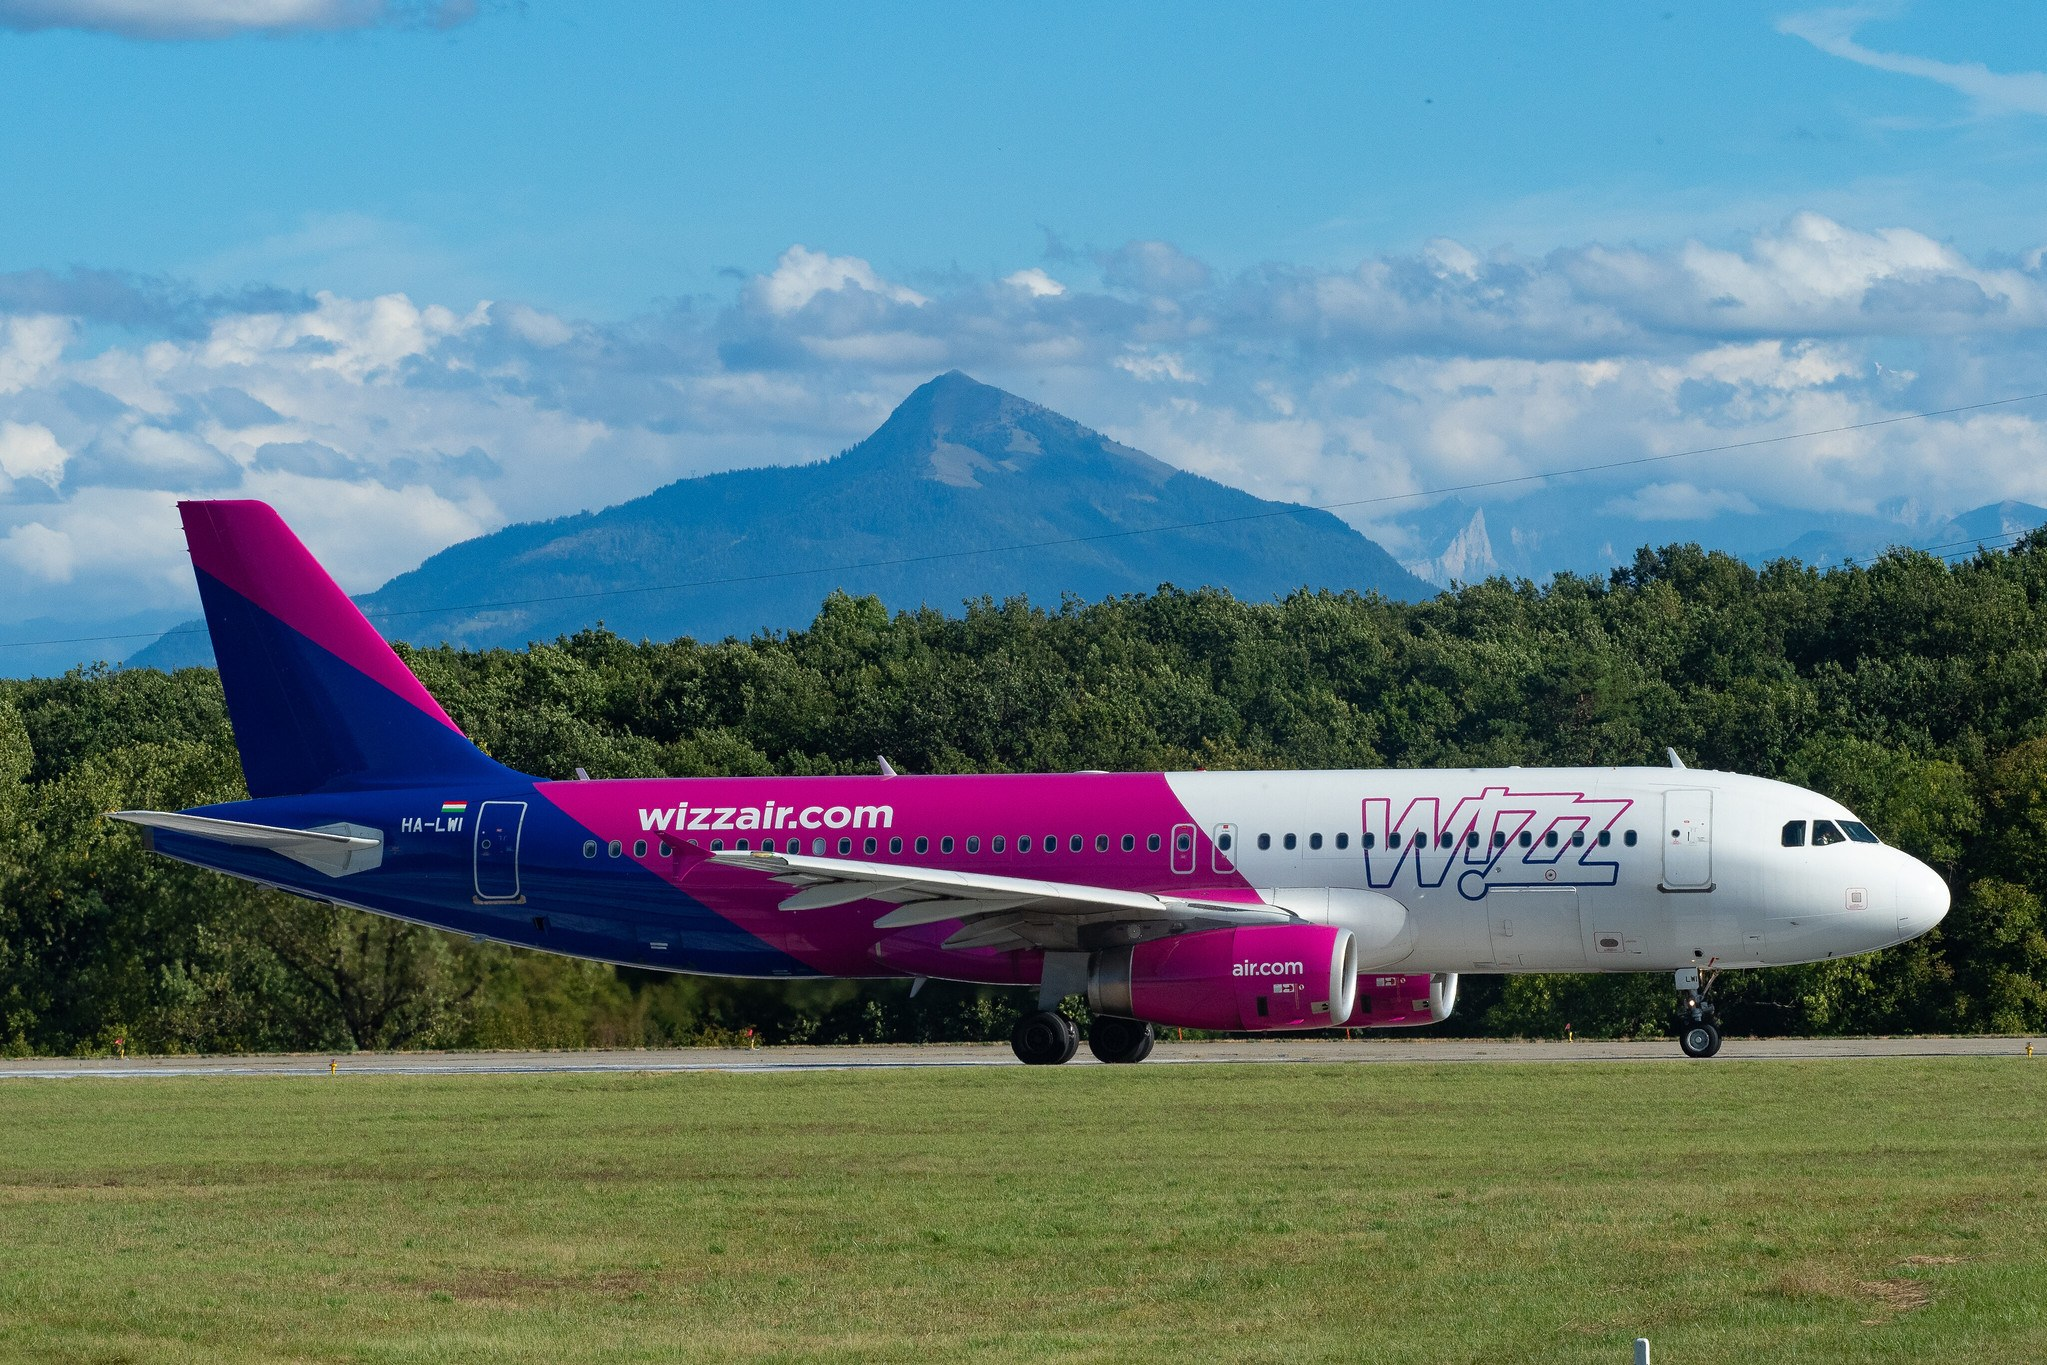 Step by Step Guide on How to Change Flights or Get Refunds on Wizz Air